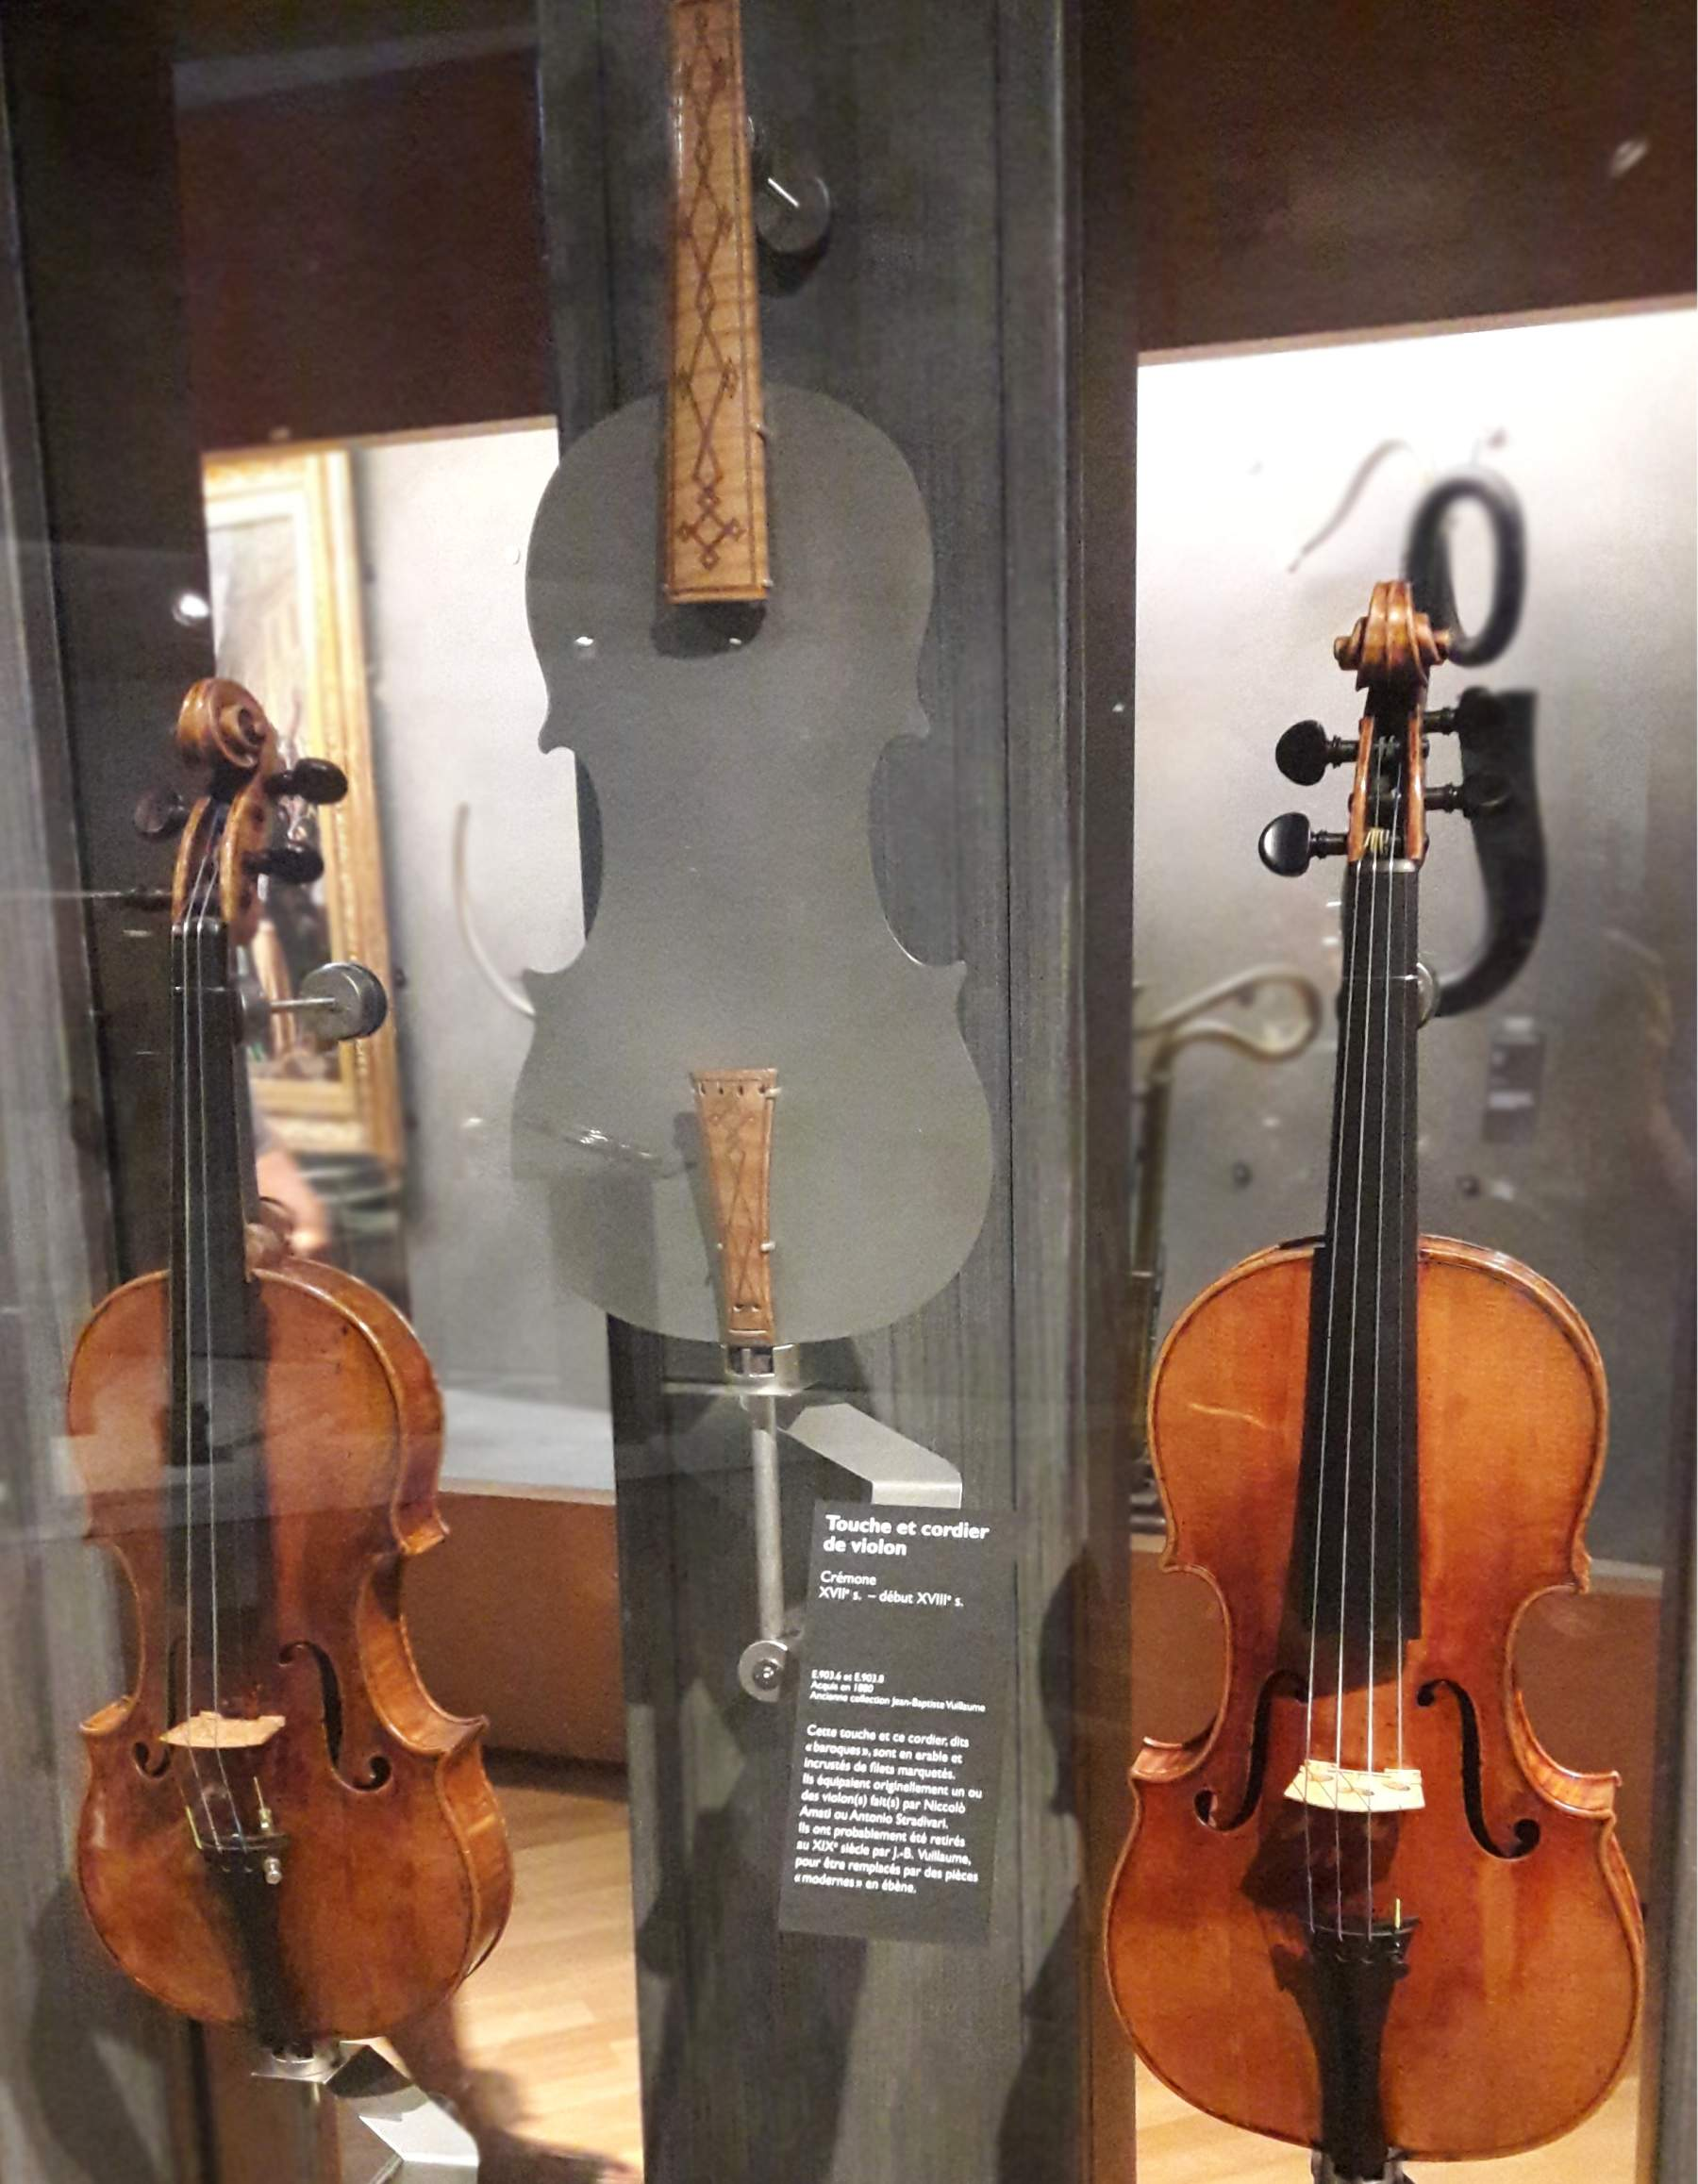 The 5 Most Expensive Violins In The World - violins made by Amati and Stradivari with an example of ornamented fingerboard and tailpiece